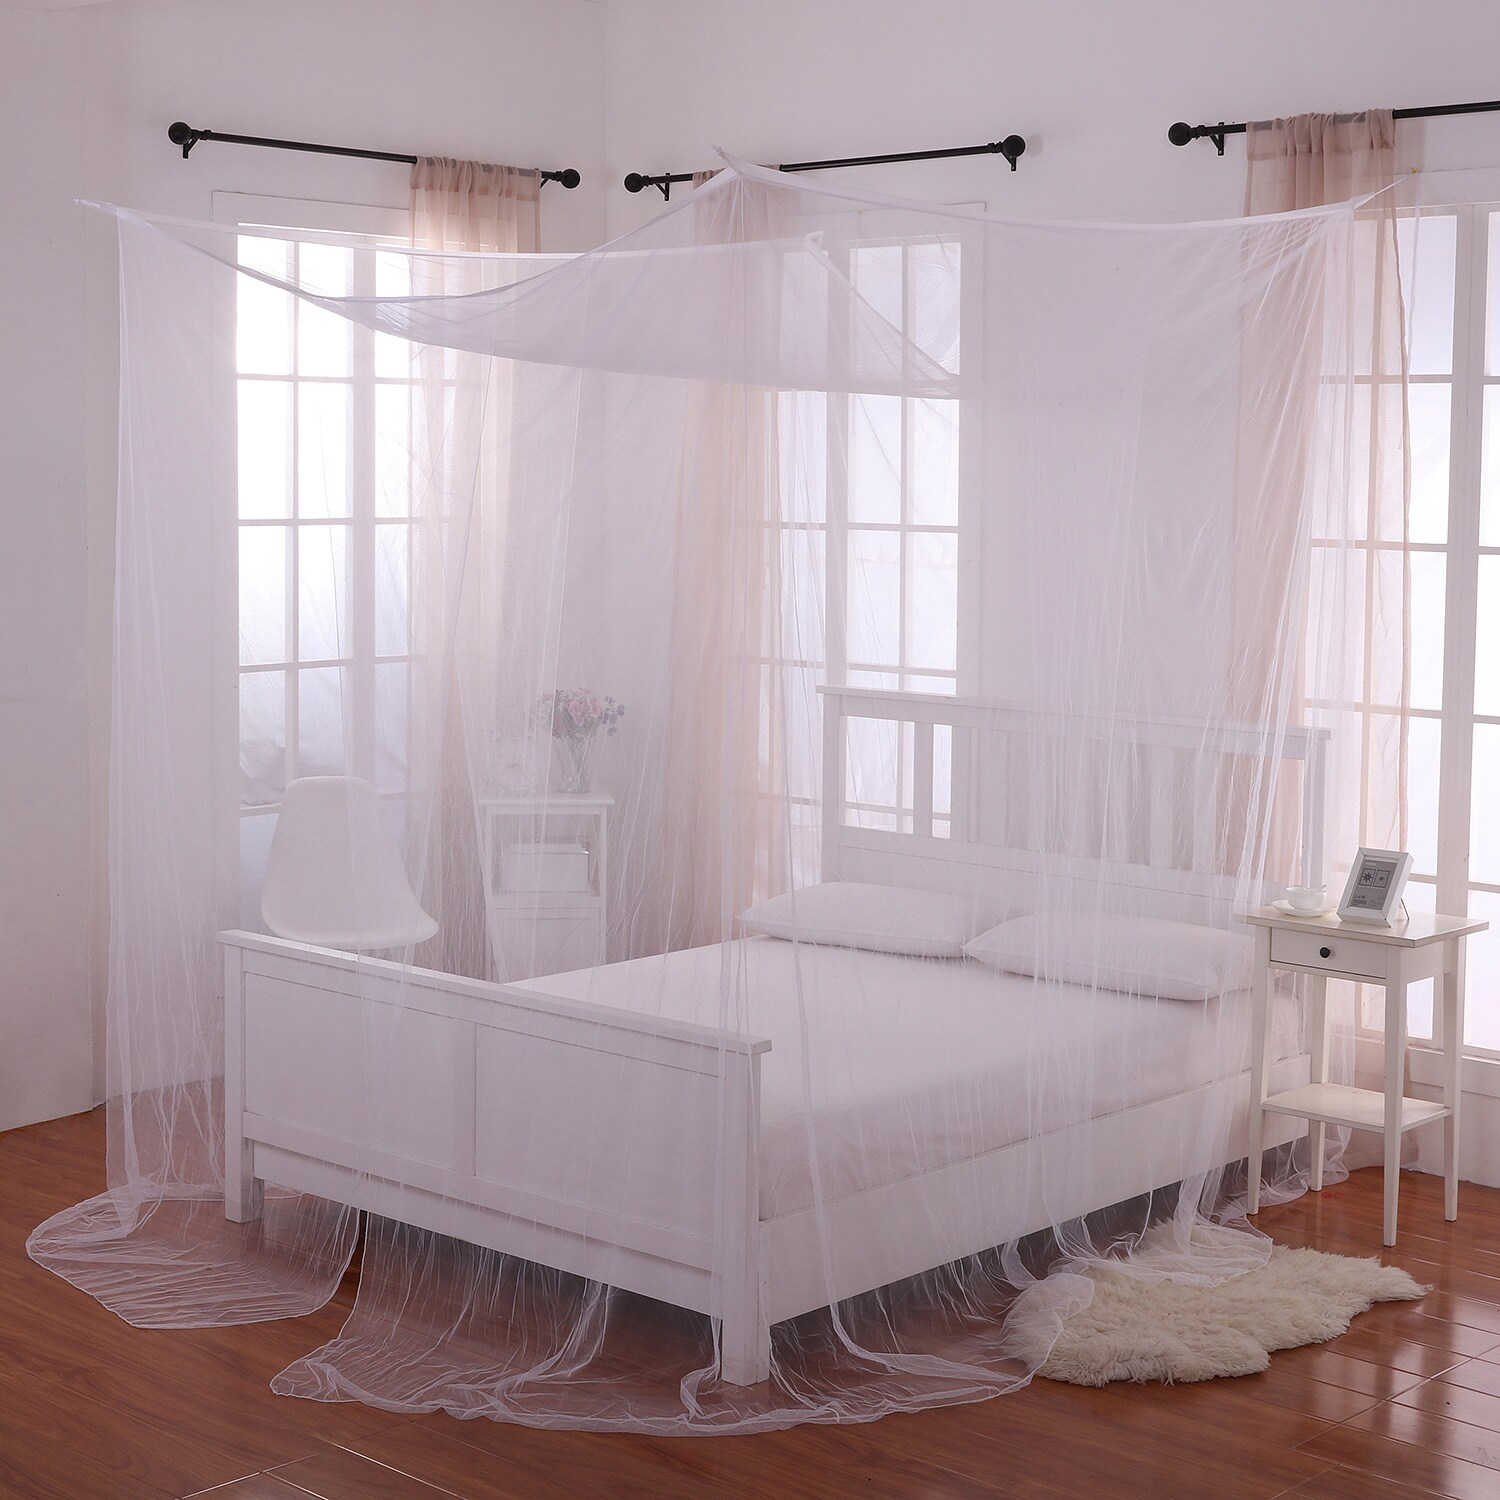 3b74793018da1 Shop Palace 4-Post Sheer Panel Bed Canopy - Free Shipping On Orders ...